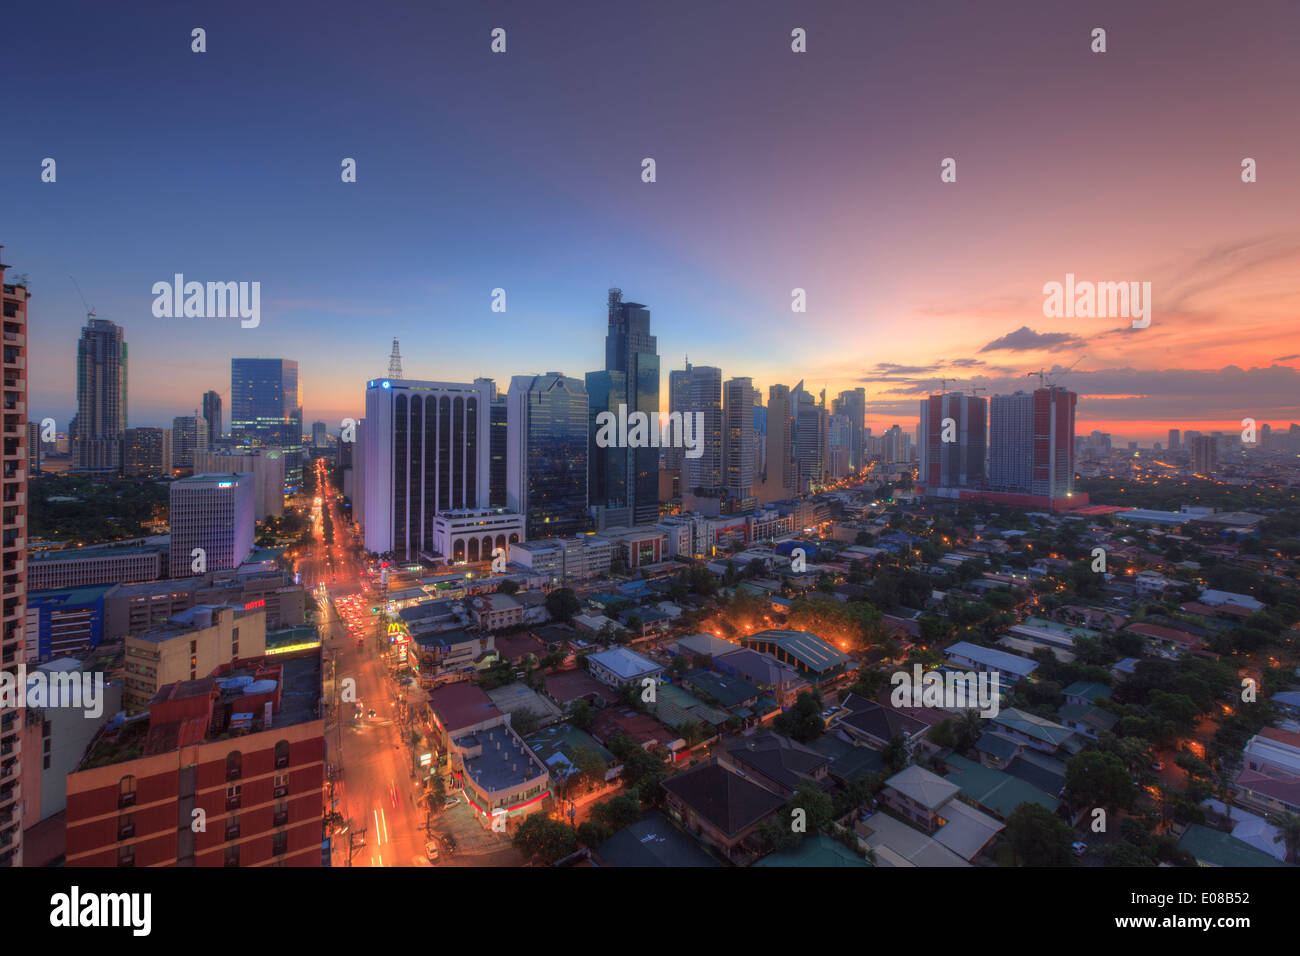 Philippines, Manila, Makati Business District, Makati Avenue and City Skyline - Stock Image